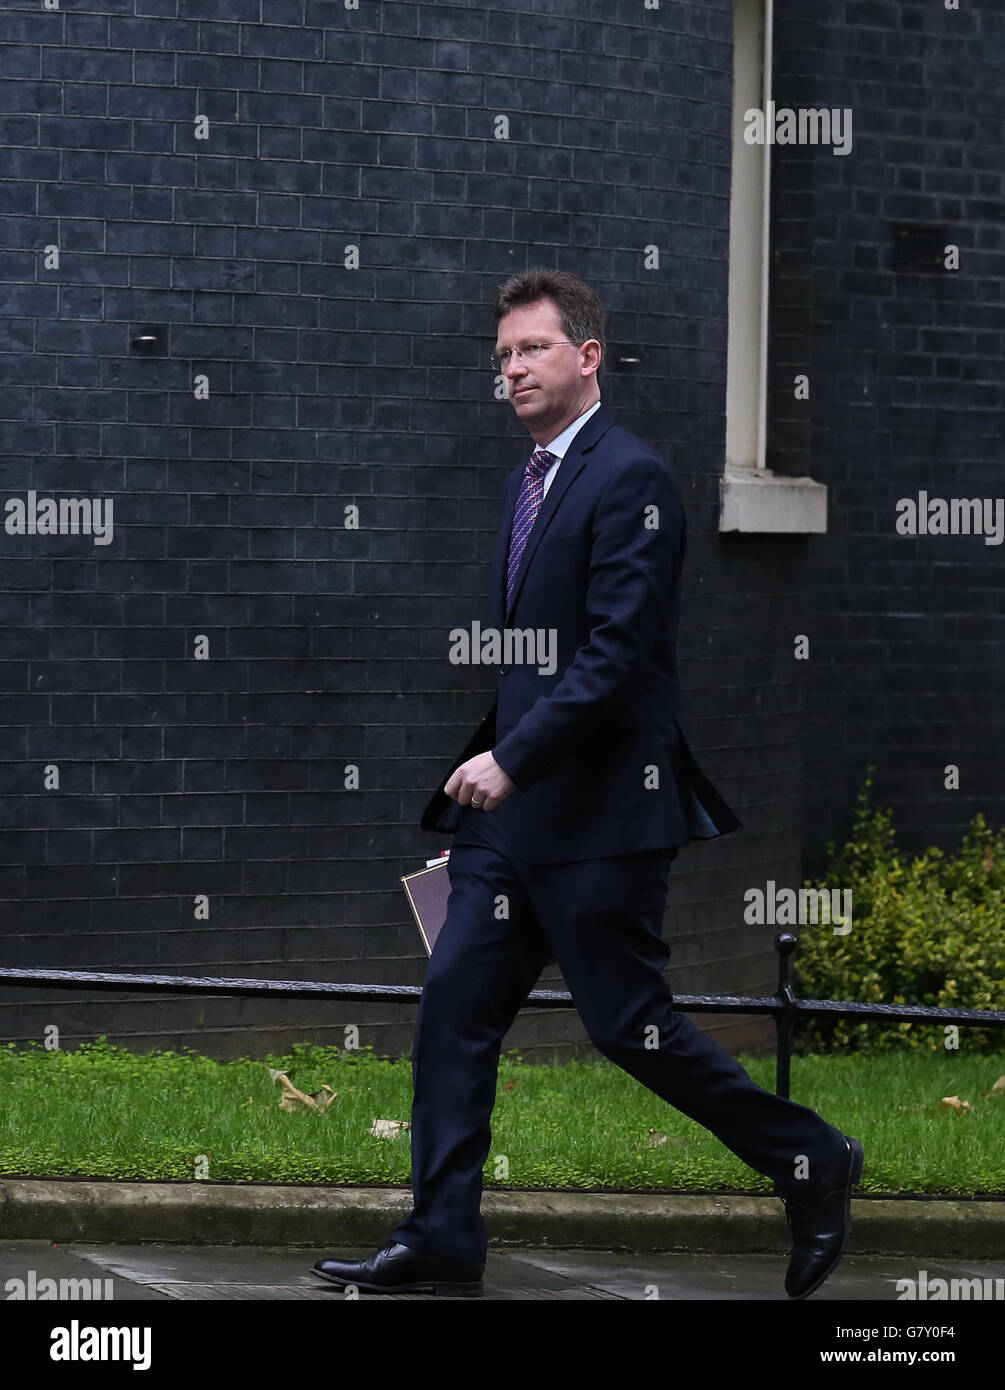 London, Britain. 27th June, 2016. Jeremy Wright, Attorney General, arrives for a cabinet meeting at 10 Downing Street - Stock Image